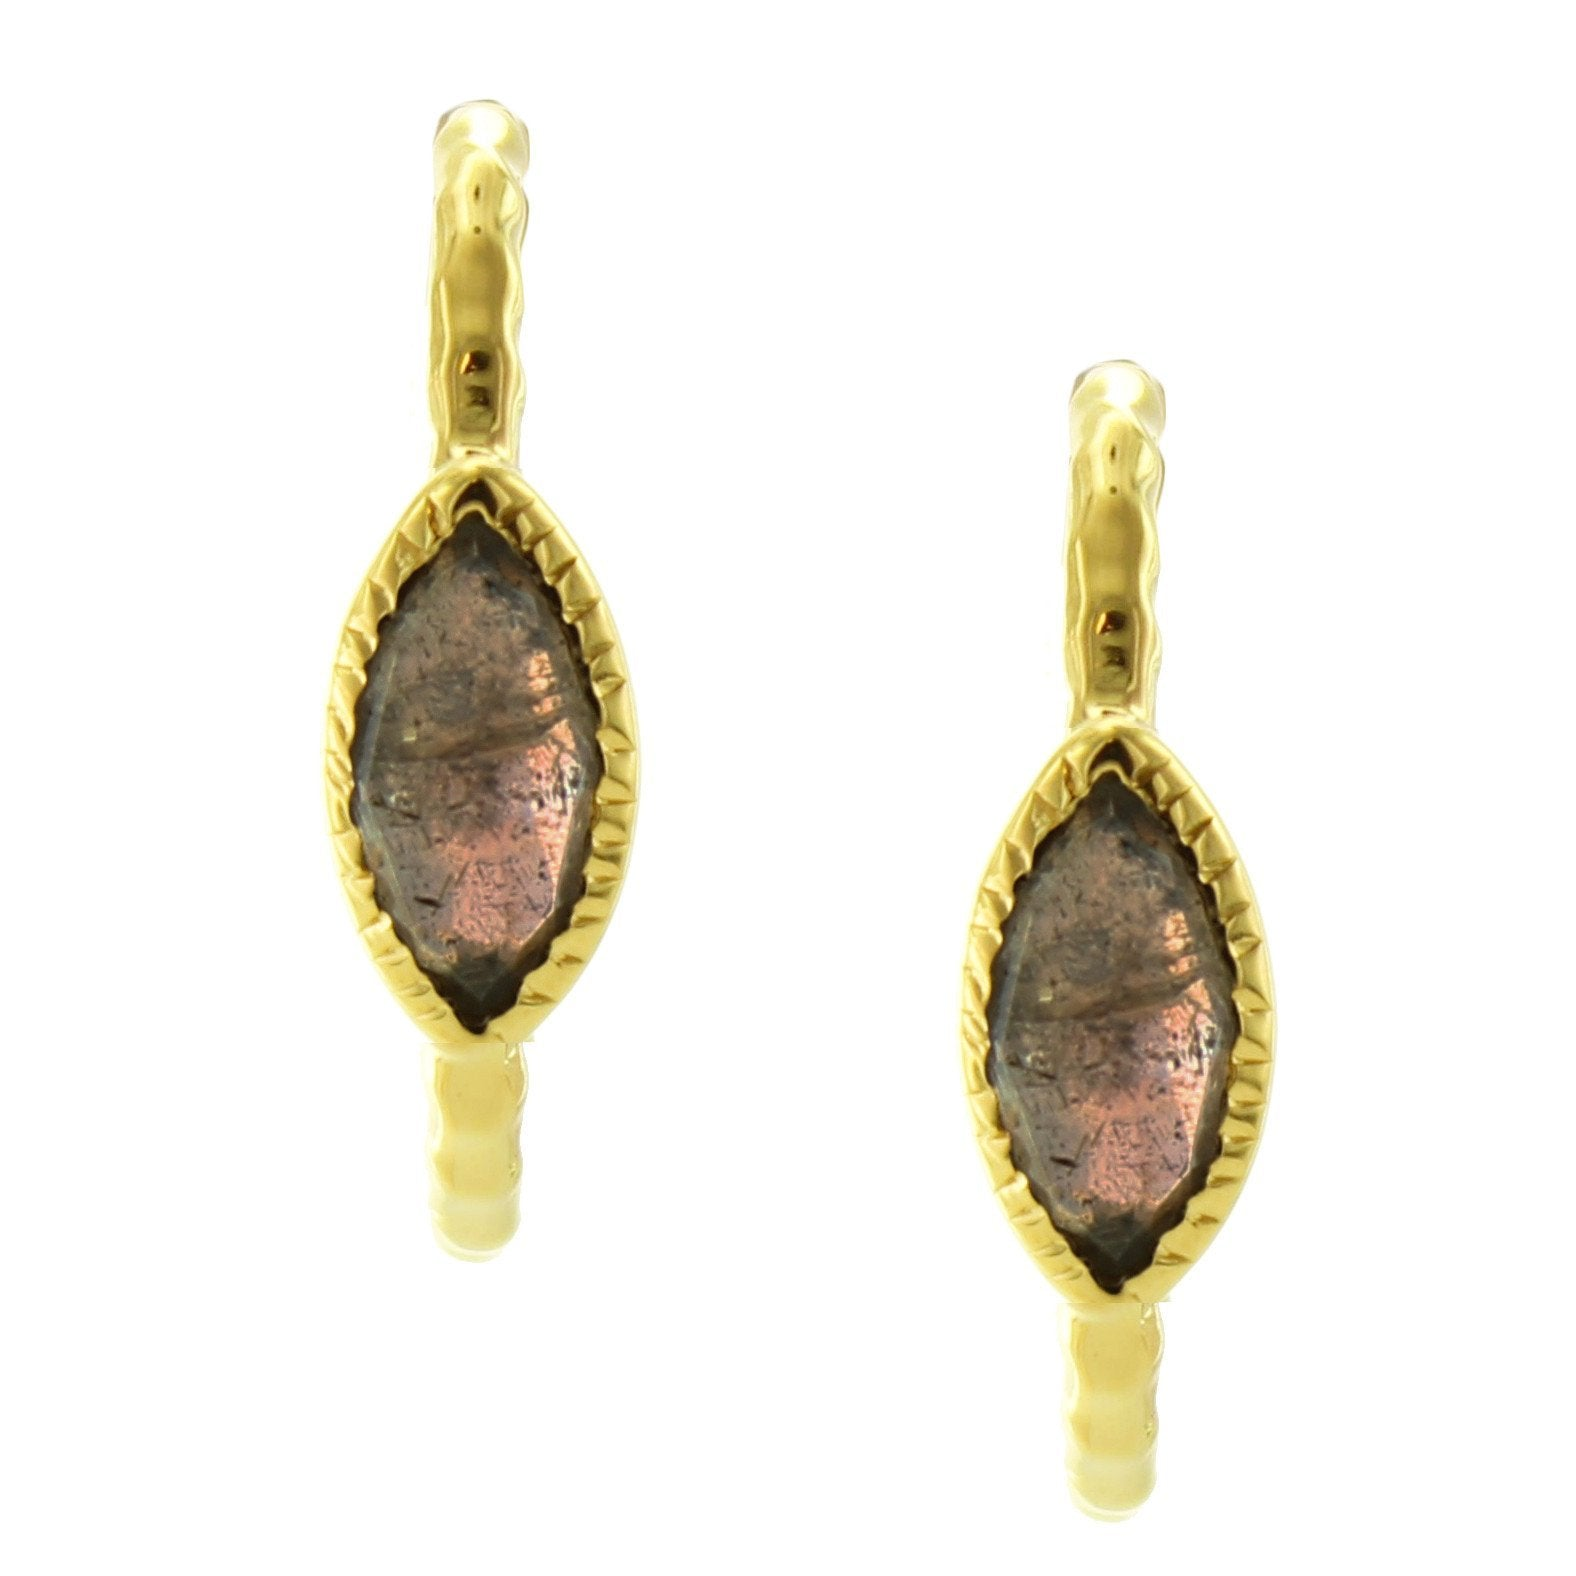 Fearless Marquise Hoop Earrings - Labradorite & Gold - SO PRETTY CARA COTTER